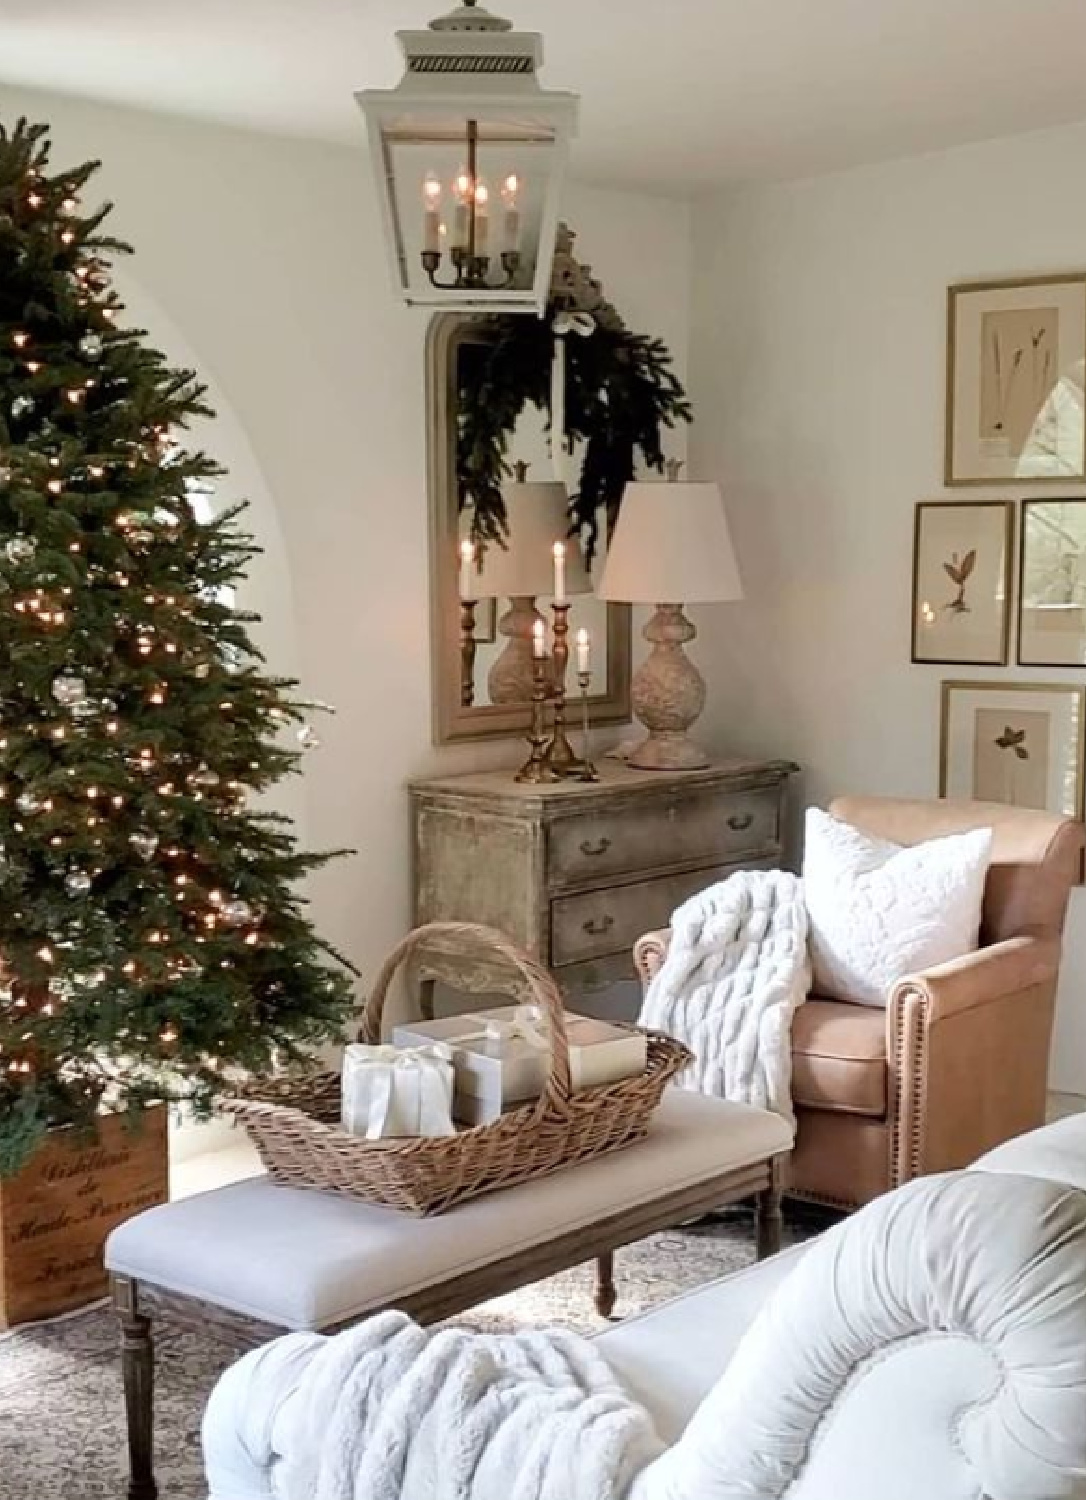 French country Christmas living room with tree, basket, and pale palette - The French Nest Co Interior Design